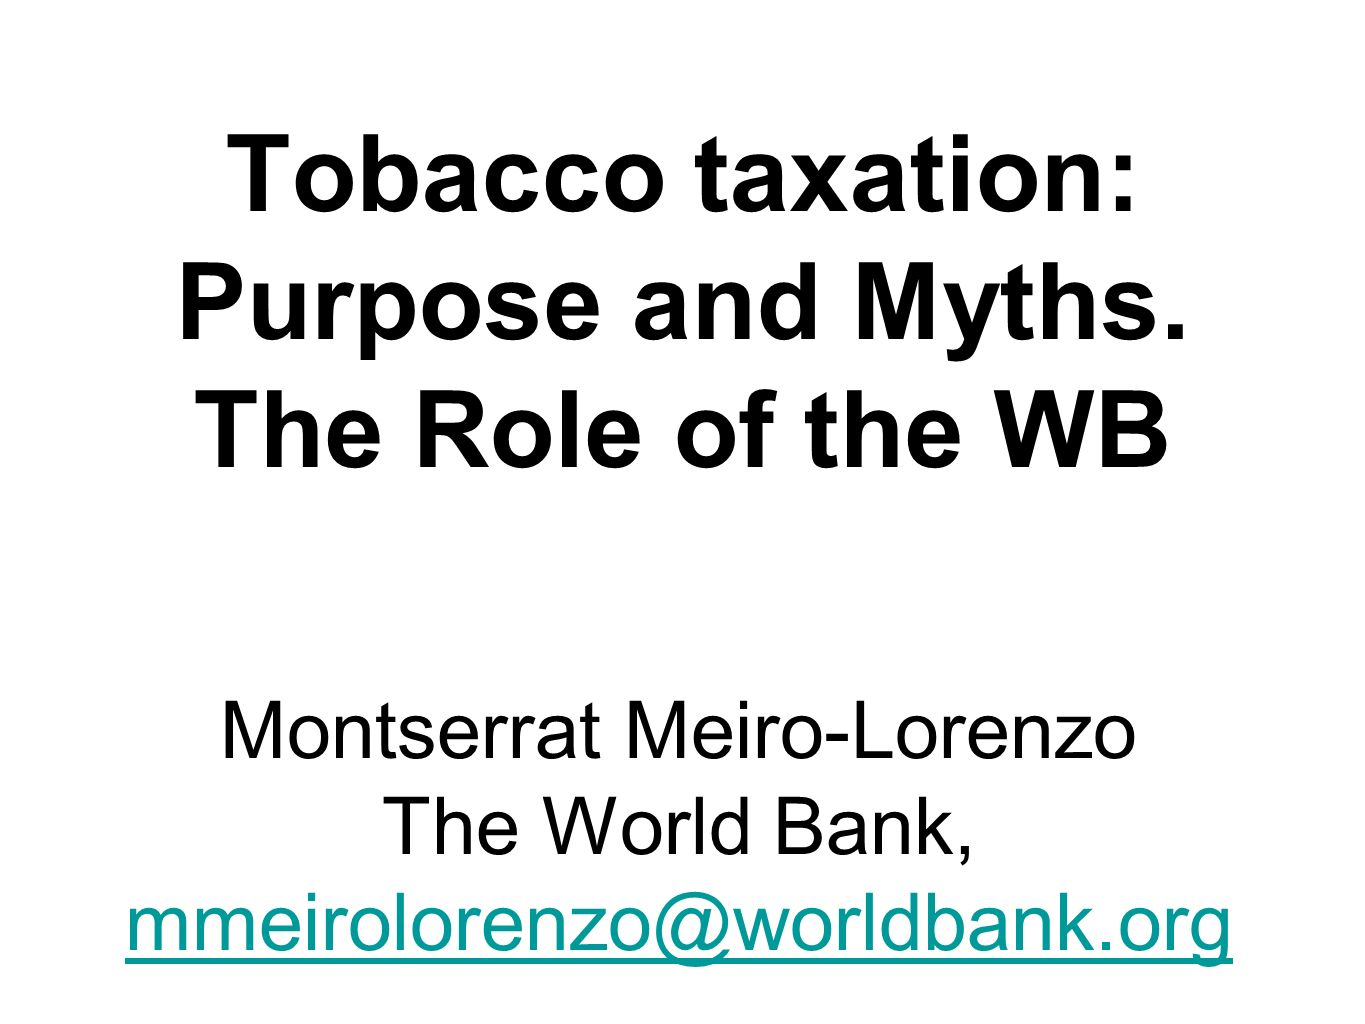 Montserrat Meiro-Lorenzo The World Bank, mmeirolorenzo@worldbank.org Tobacco taxation: Purpose and Myths.